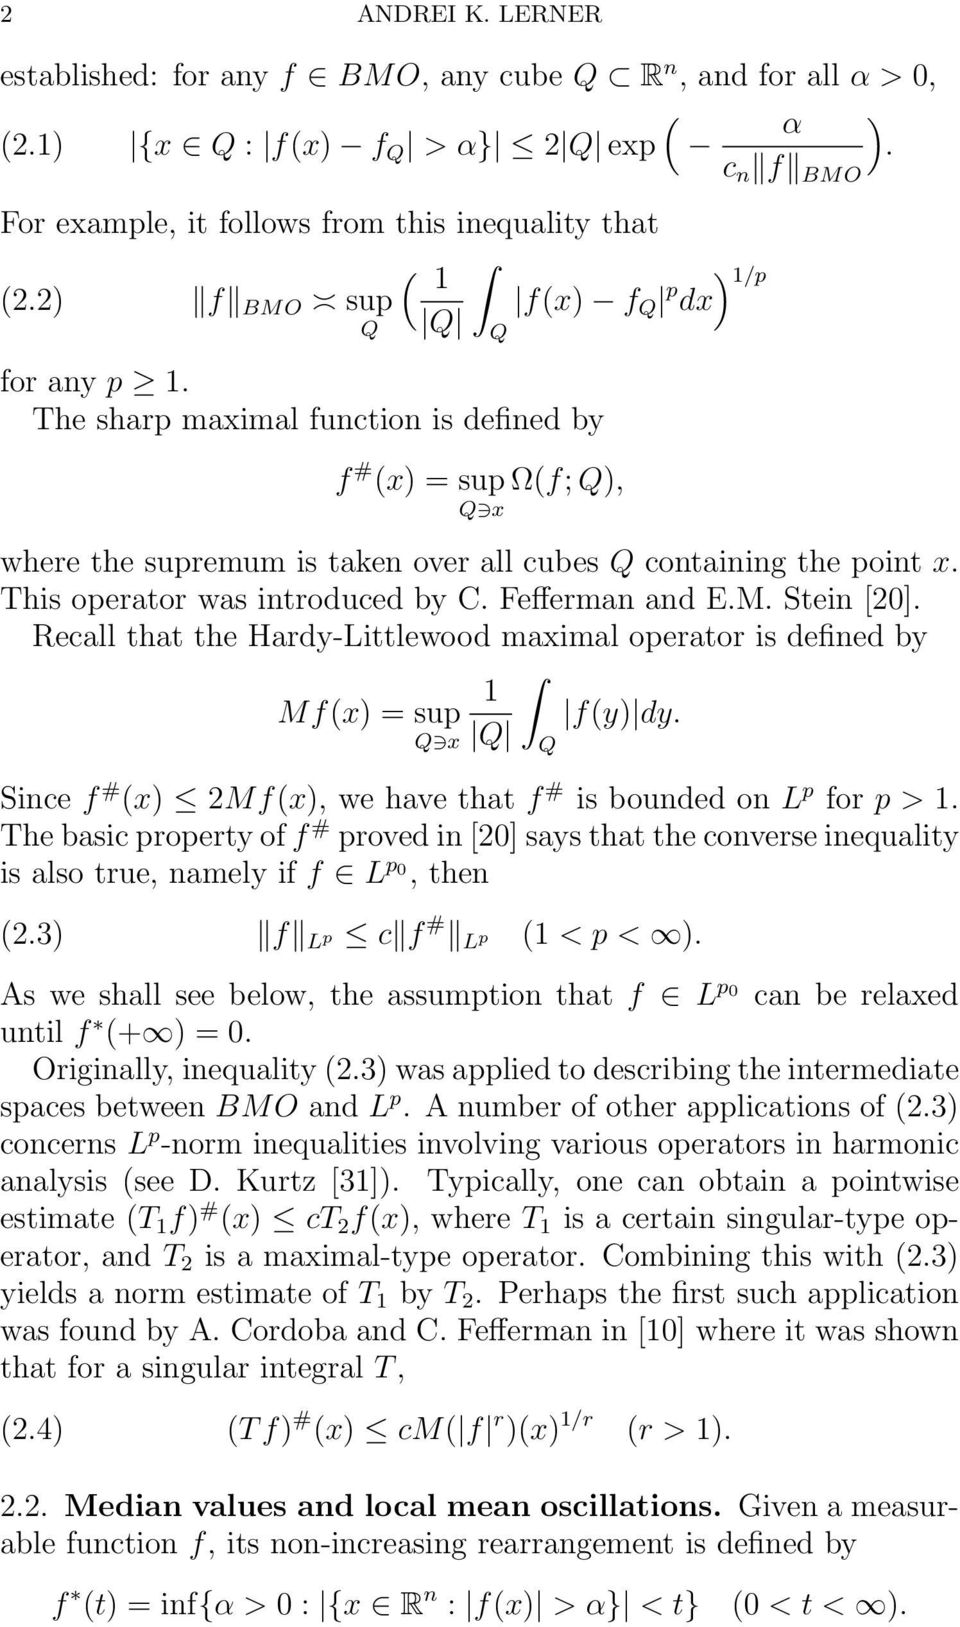 This operator was introduced by C. Fefferman and E.M. Stein [20]. Recall that the Hardy-Littlewood maximal operator is defined by 1 Mfx) = sup x fy) dy.